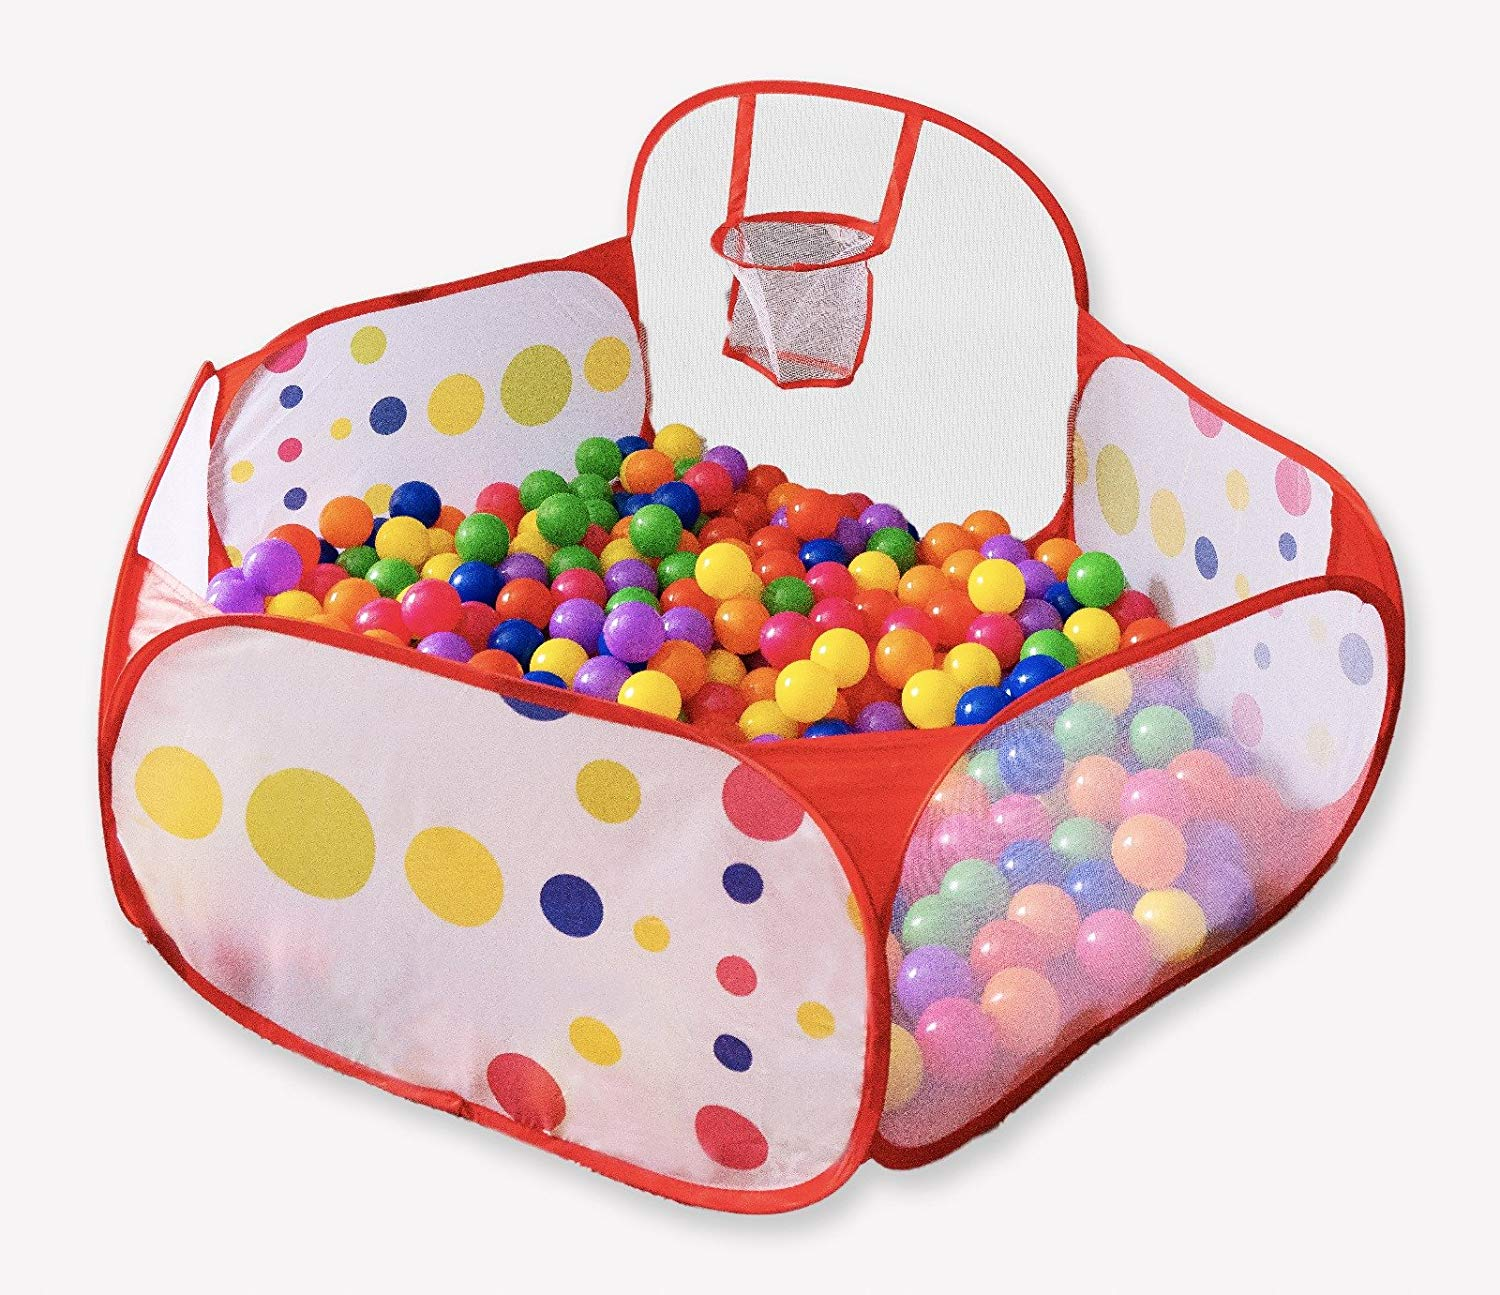 FoxPlay Basketball Ball Pit